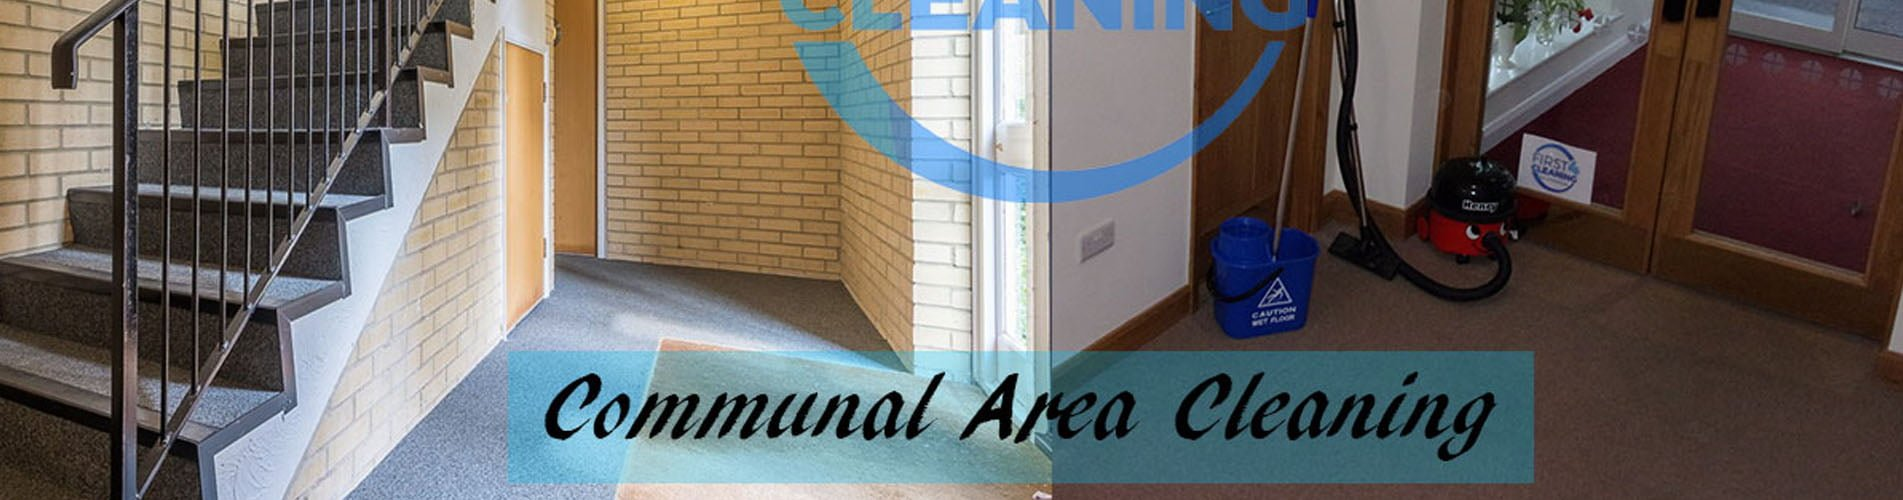 Communal Area Cleaning